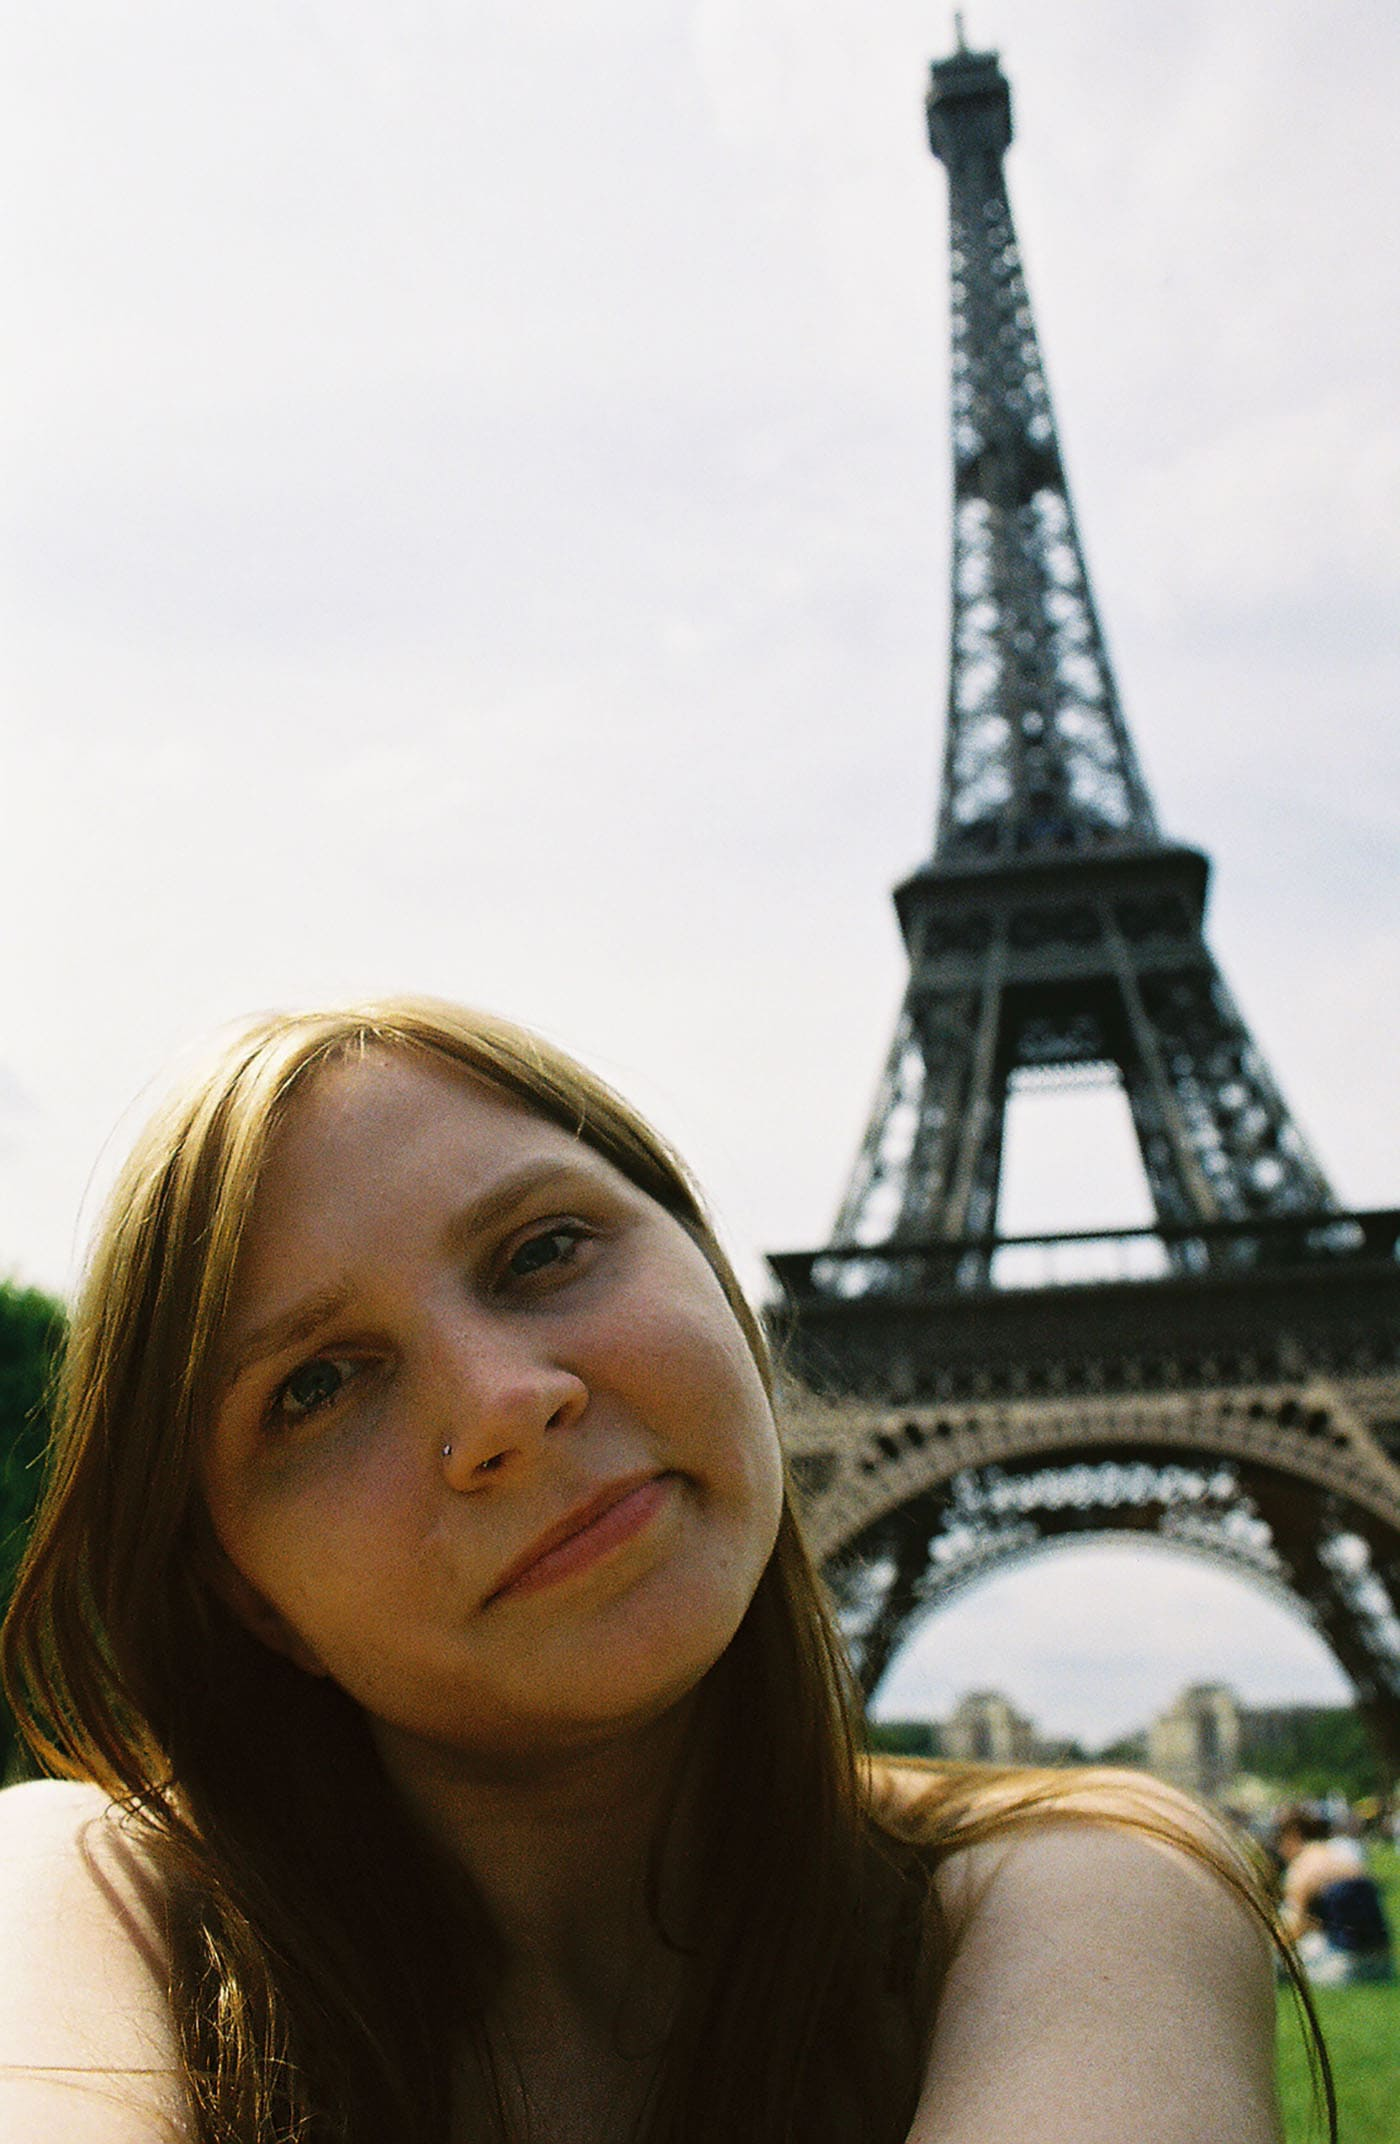 Self portrait in front of the Eiffel Tower in Paris, France